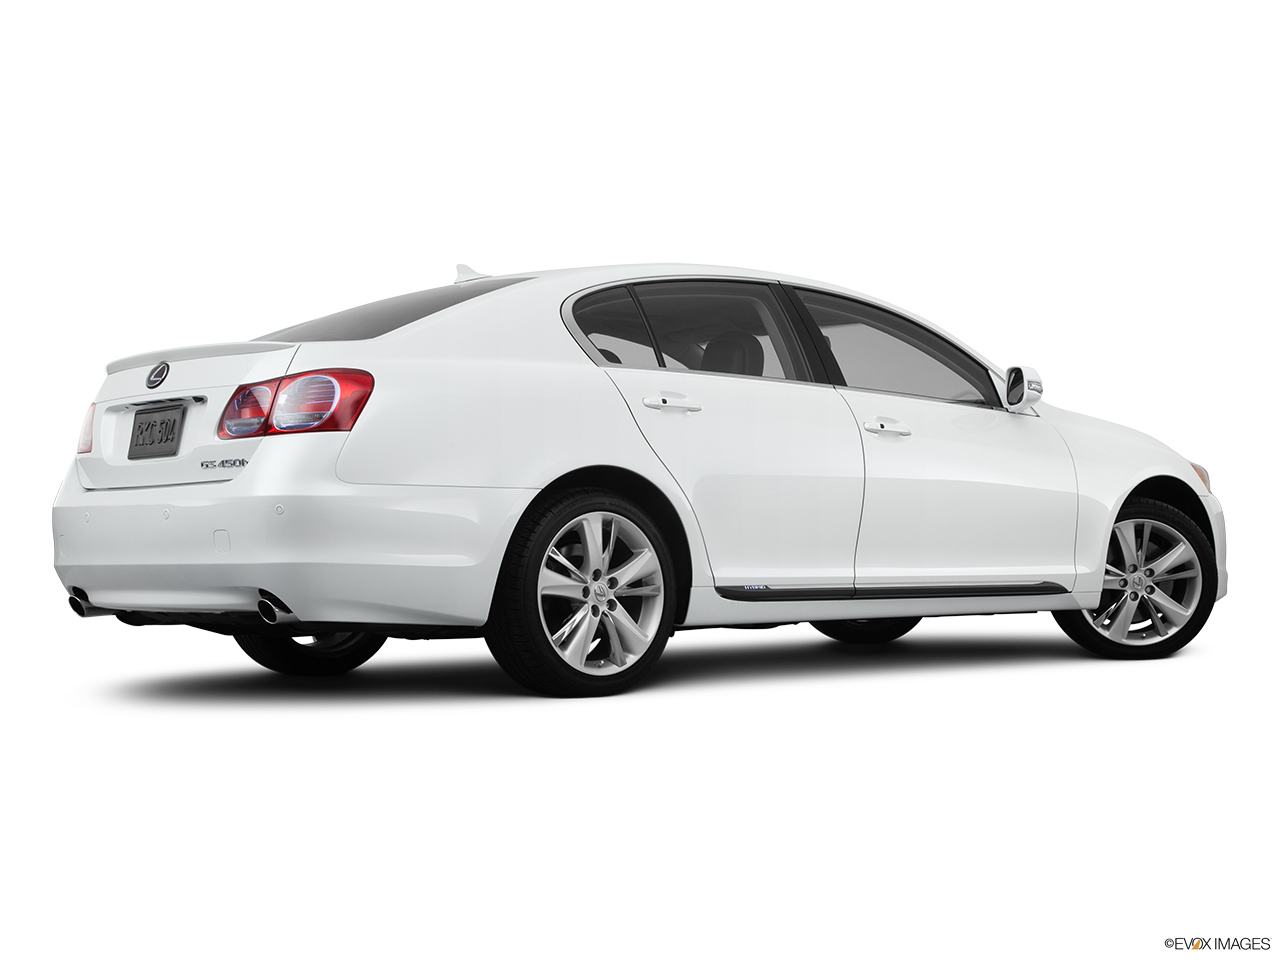 2011 Lexus GS Hybrid GS450h Low/wide rear 5/8.